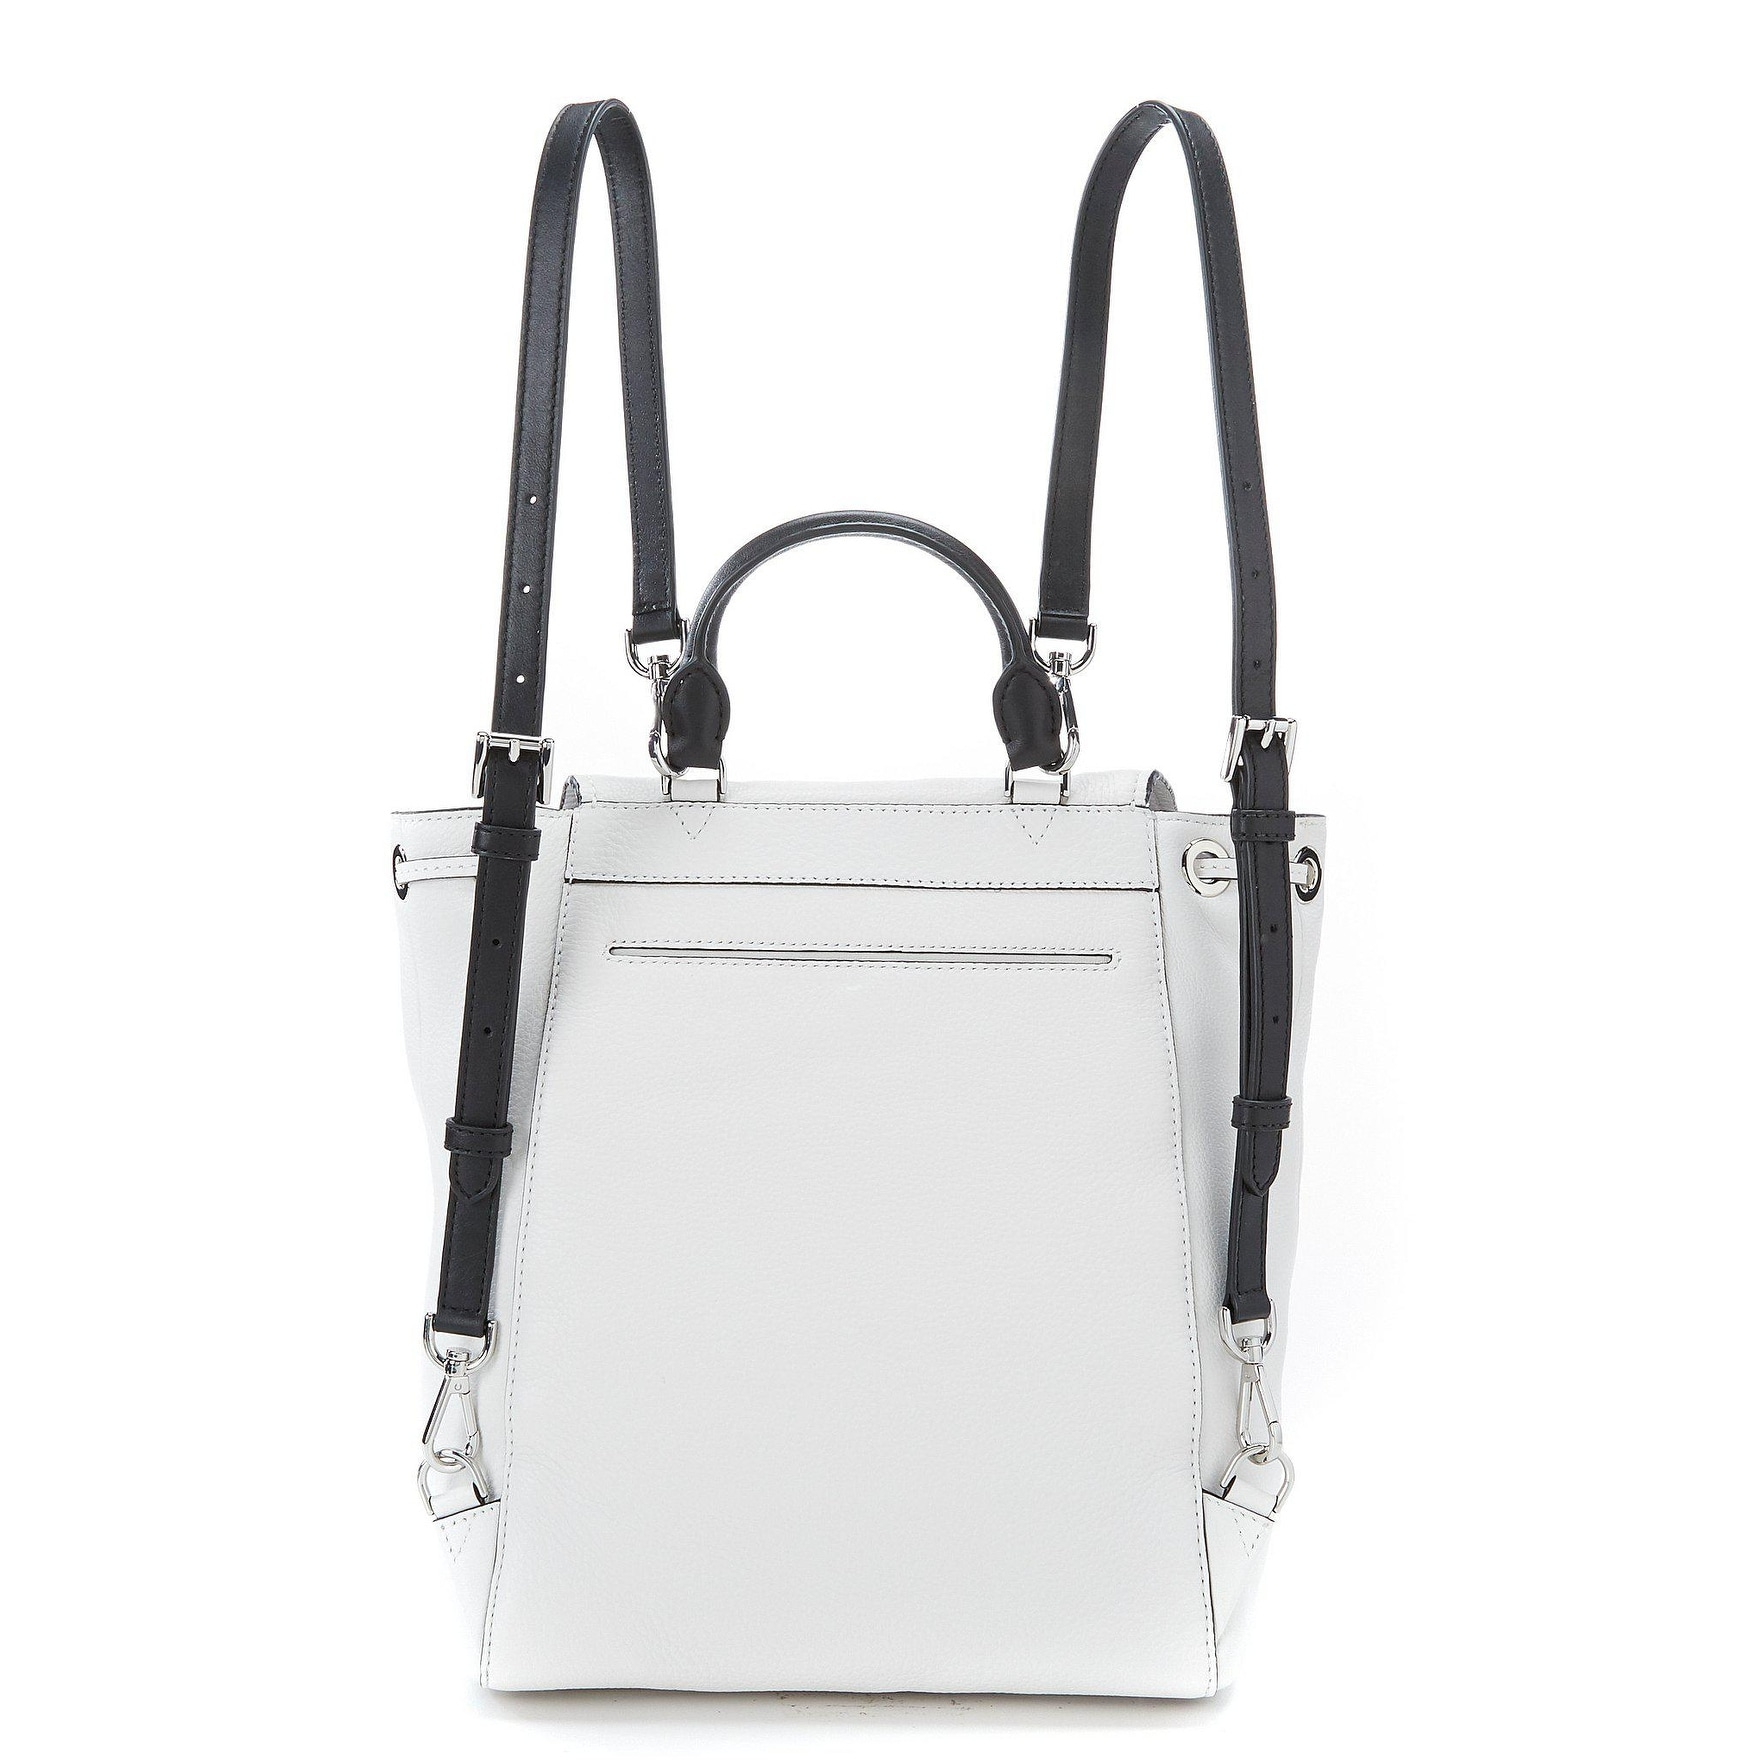 b2880d19e8fbb6 Shop Michael Kors Evie Pebbled Leather Medium Backpack in Optic White -  Free Shipping Today - Overstock - 22876421